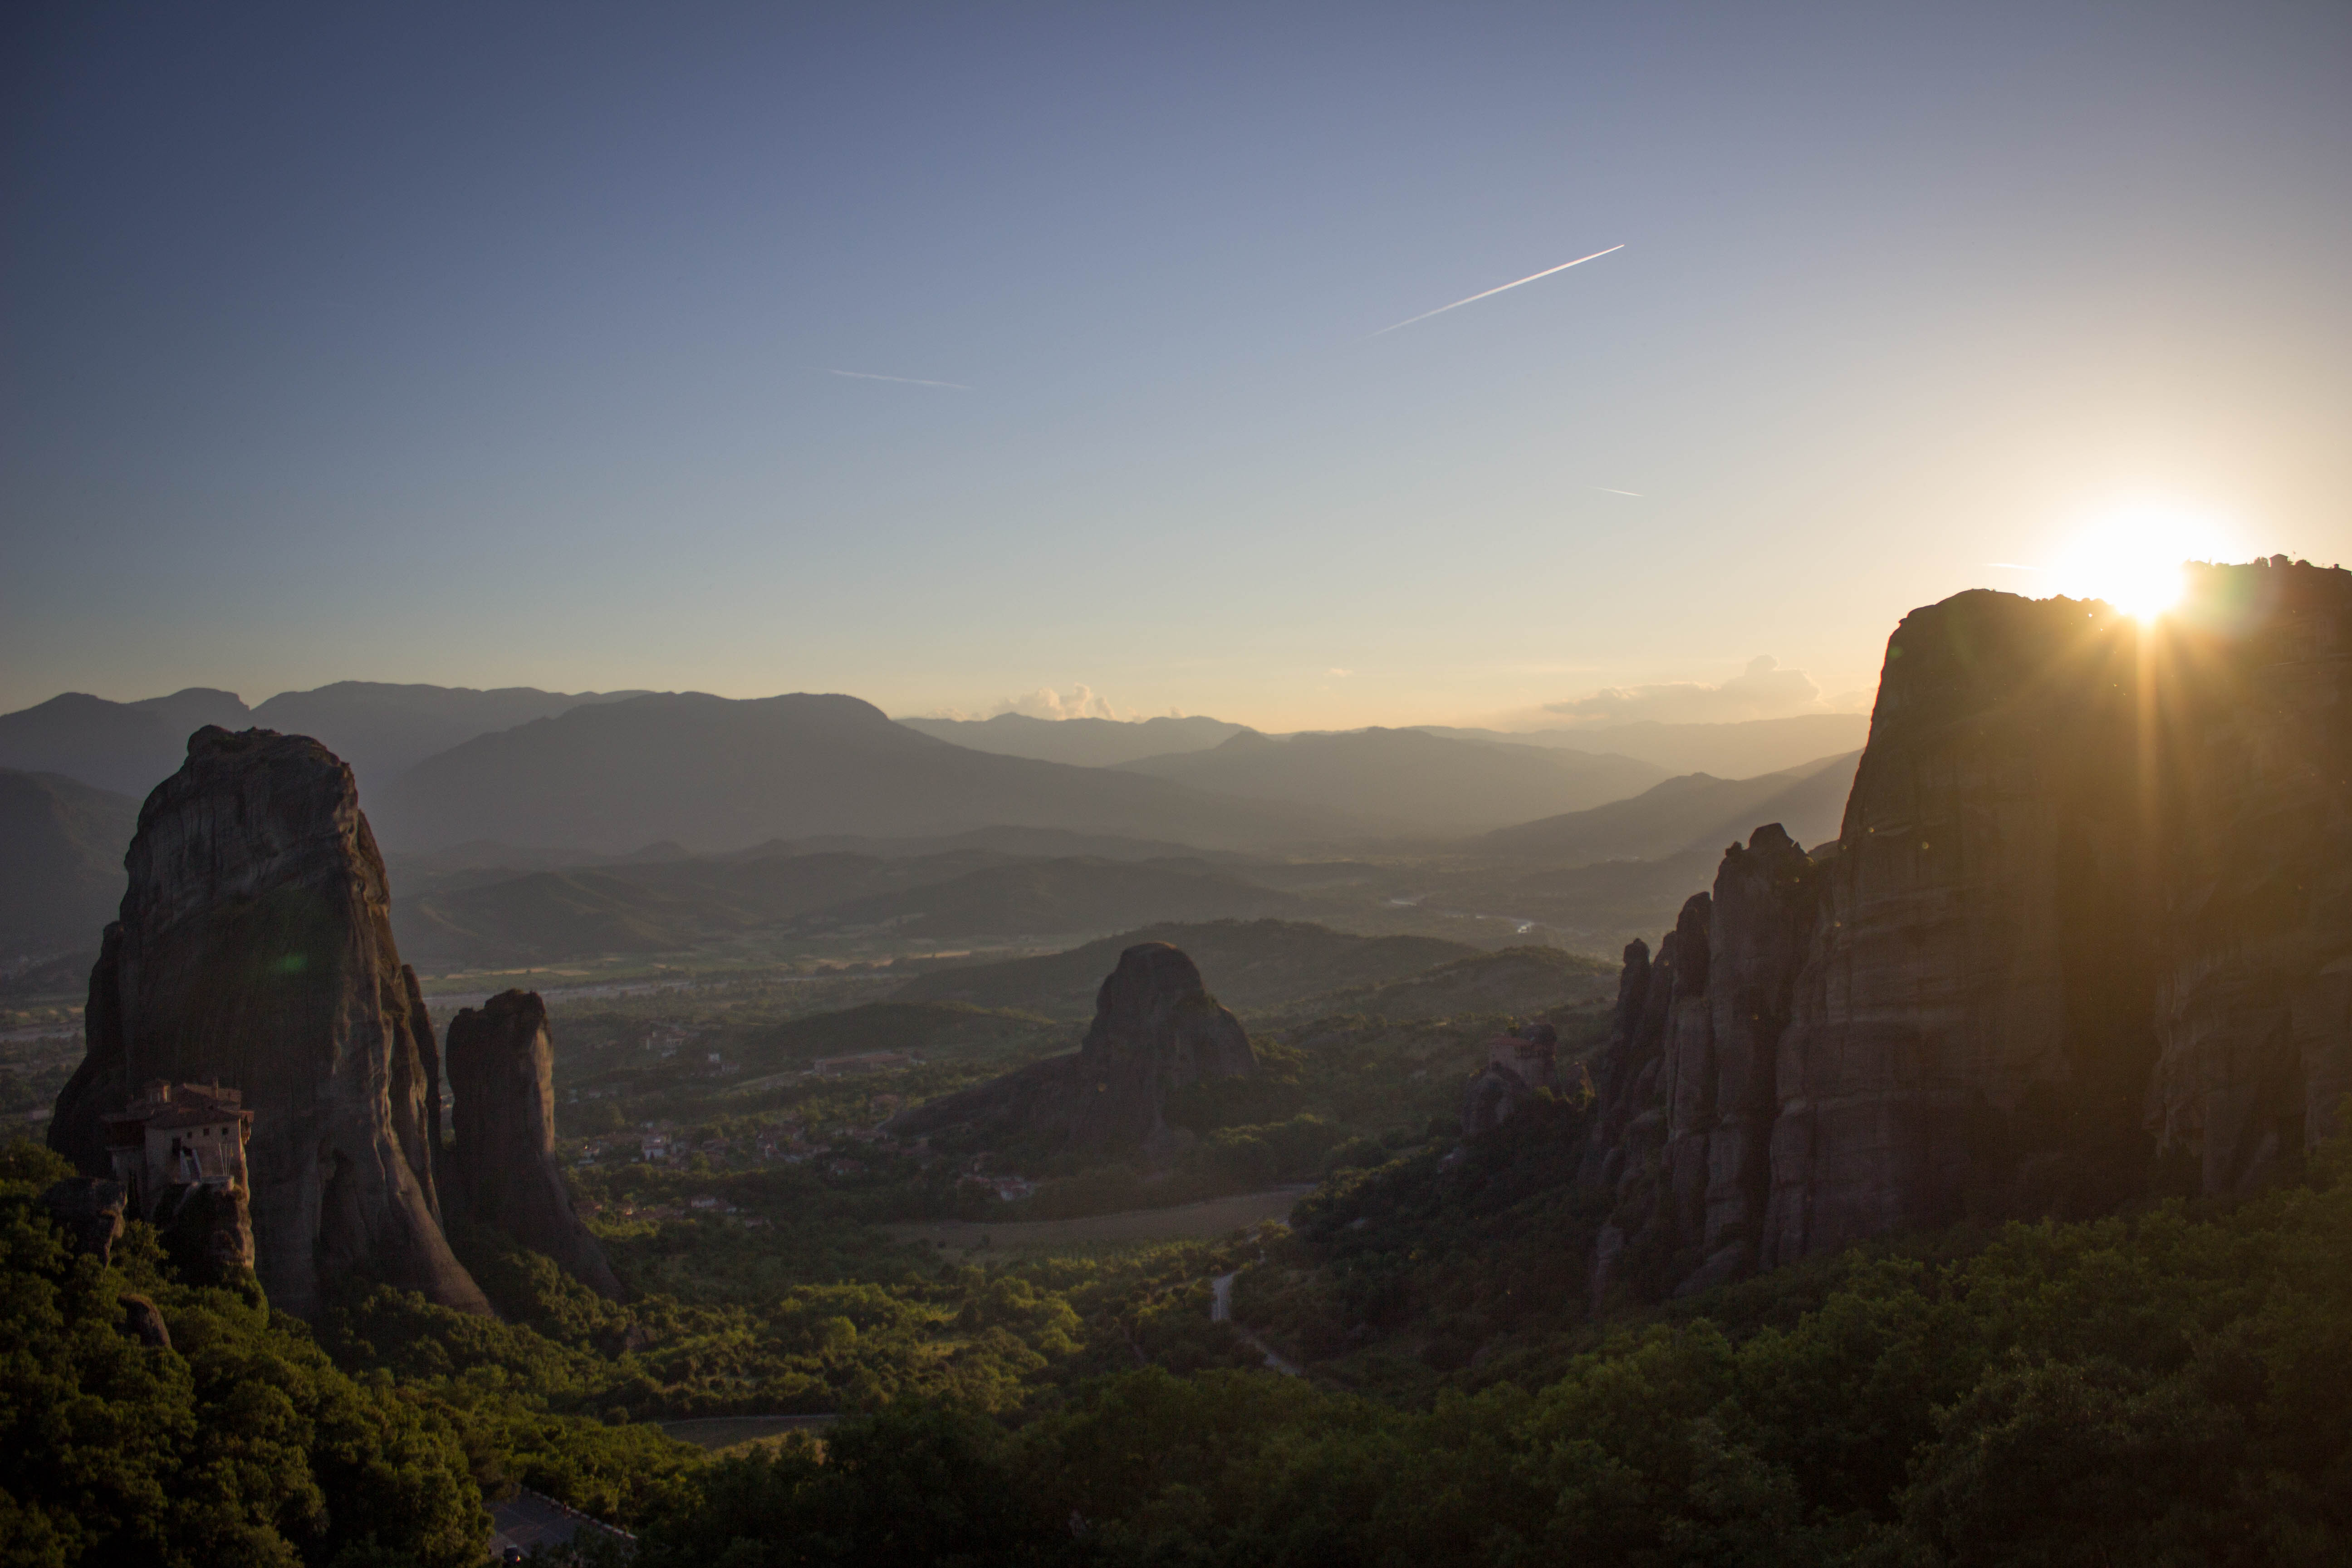 Sunset over the mountains in Meteora, Greece